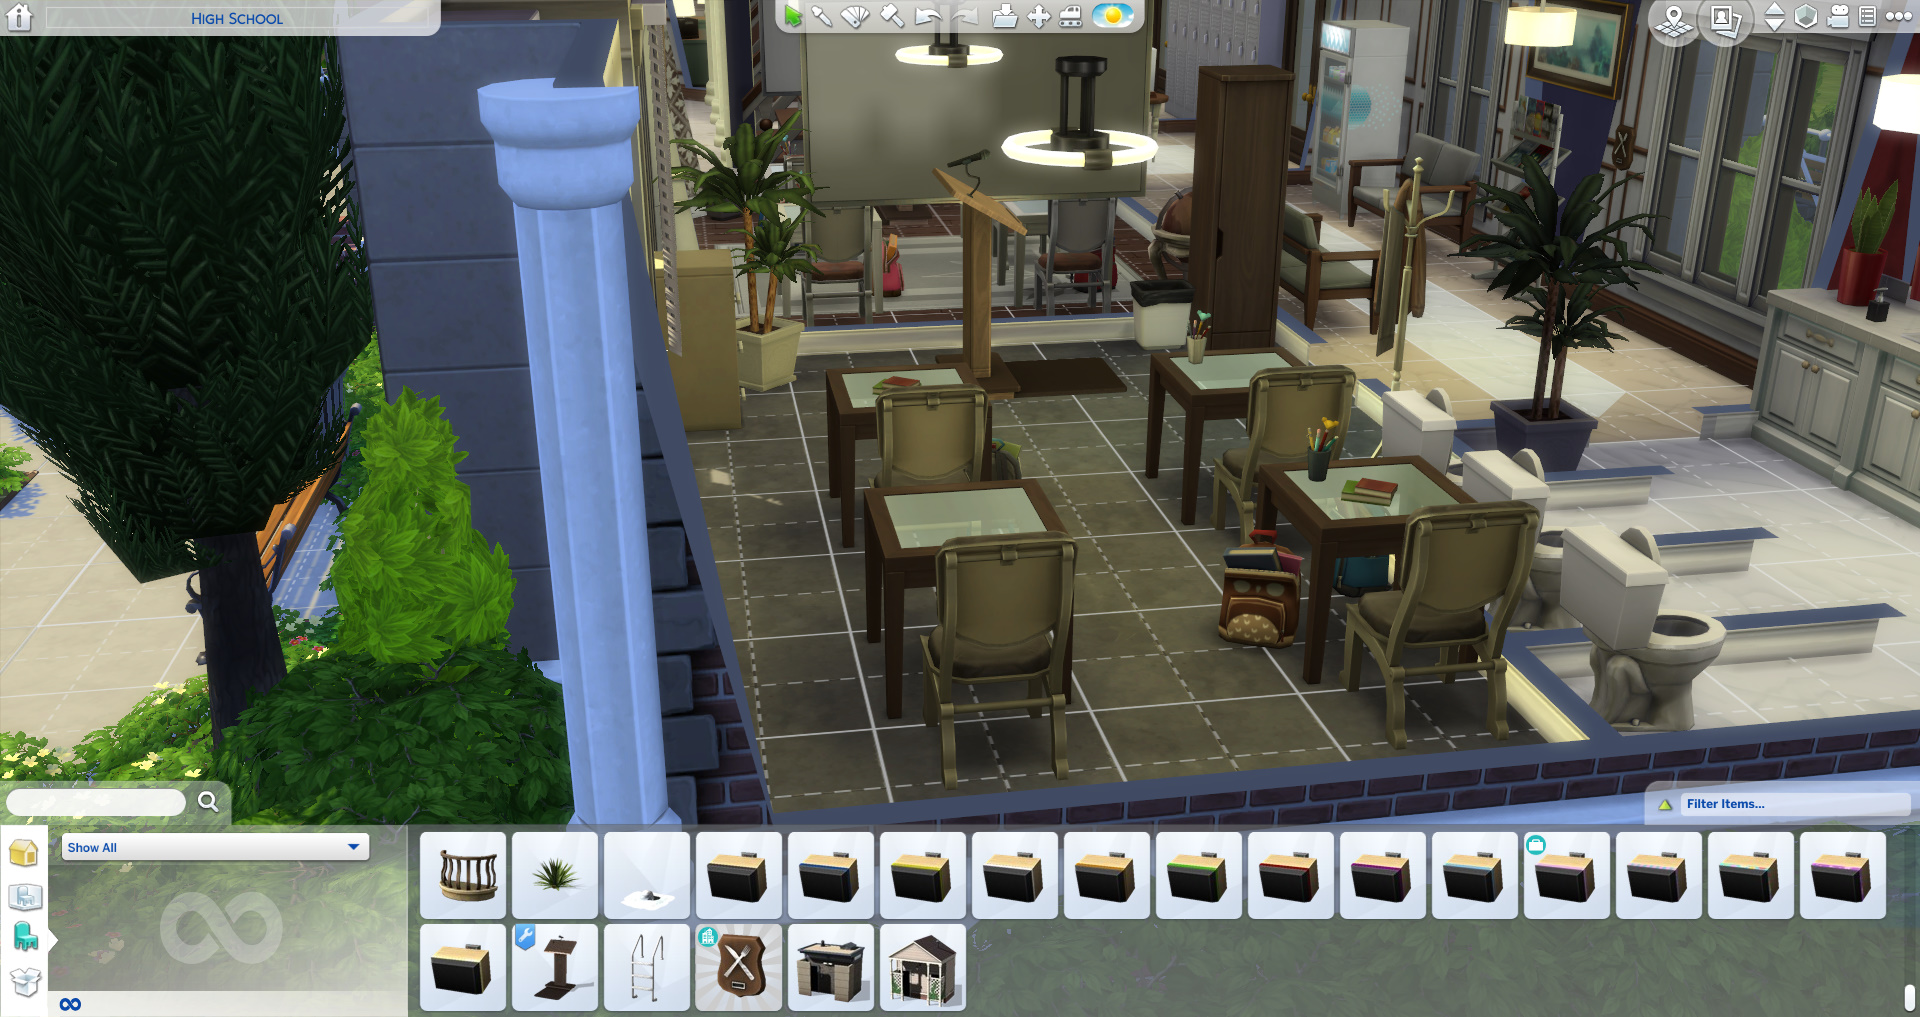 The Sims 4 building screen showing a range of school items